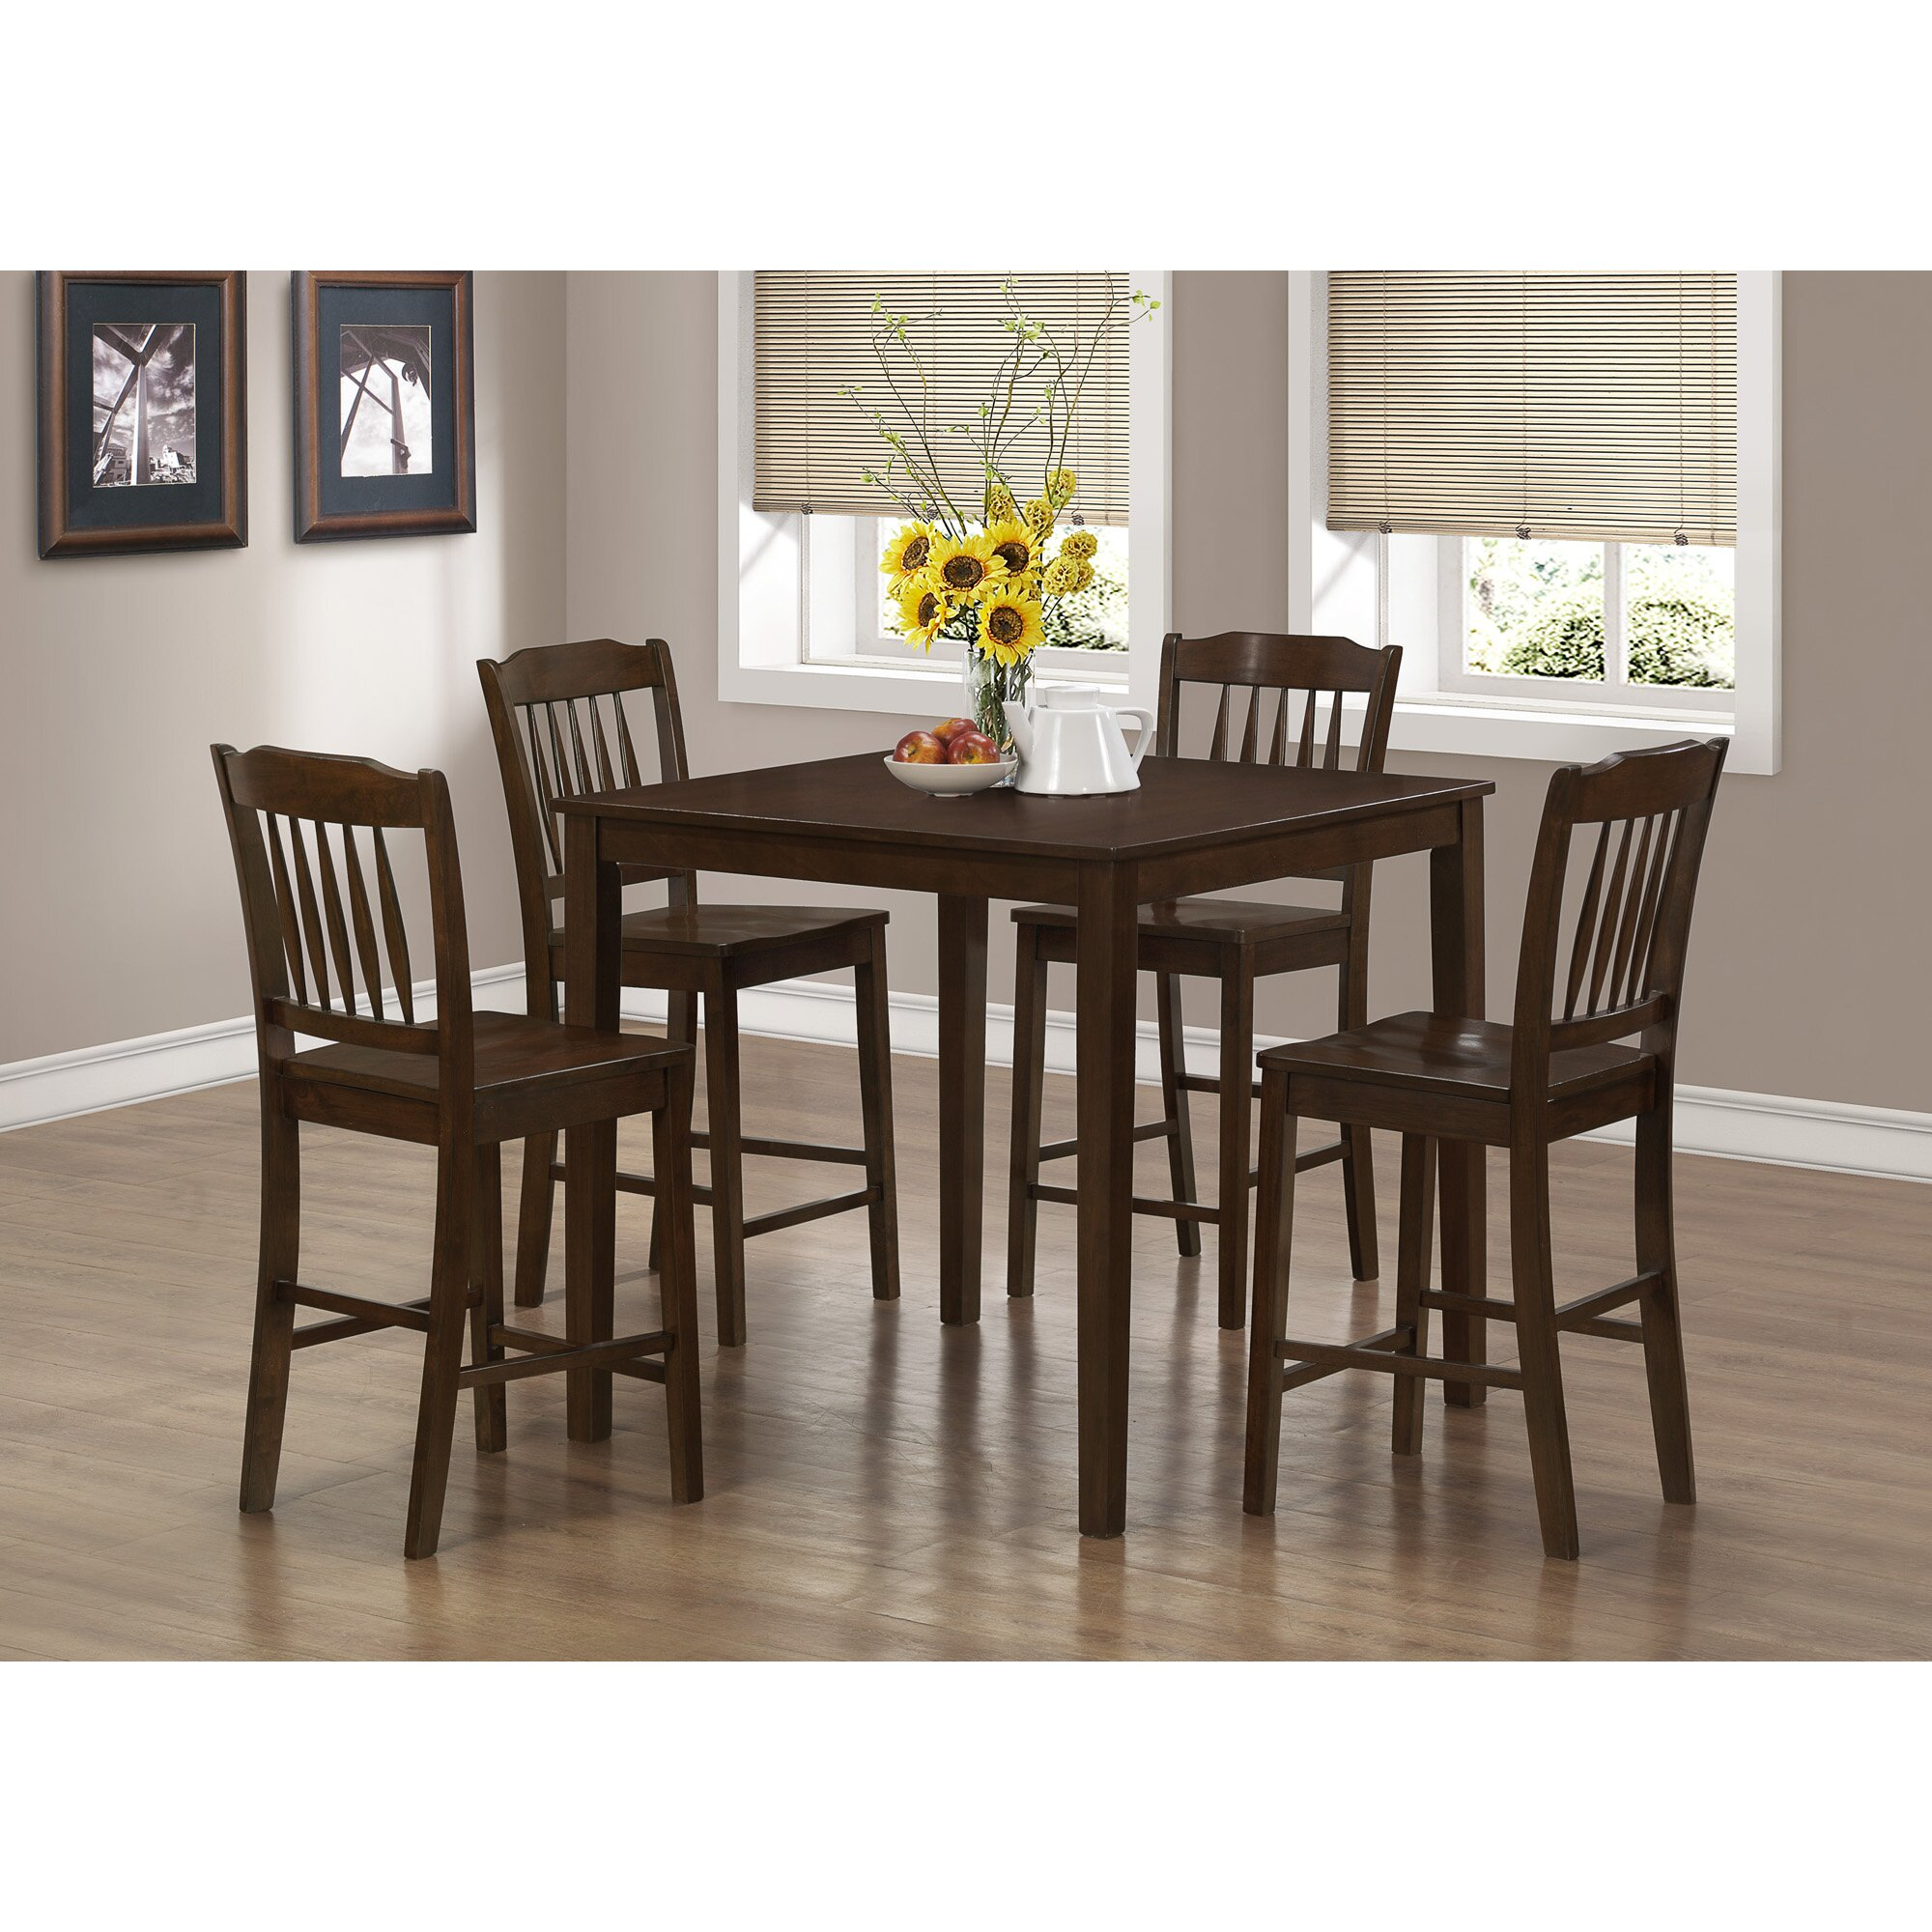 Monarch Specialties White Dining Set With Round Dining: Monarch Specialties Inc. 5 Piece Counter Height Dining Set